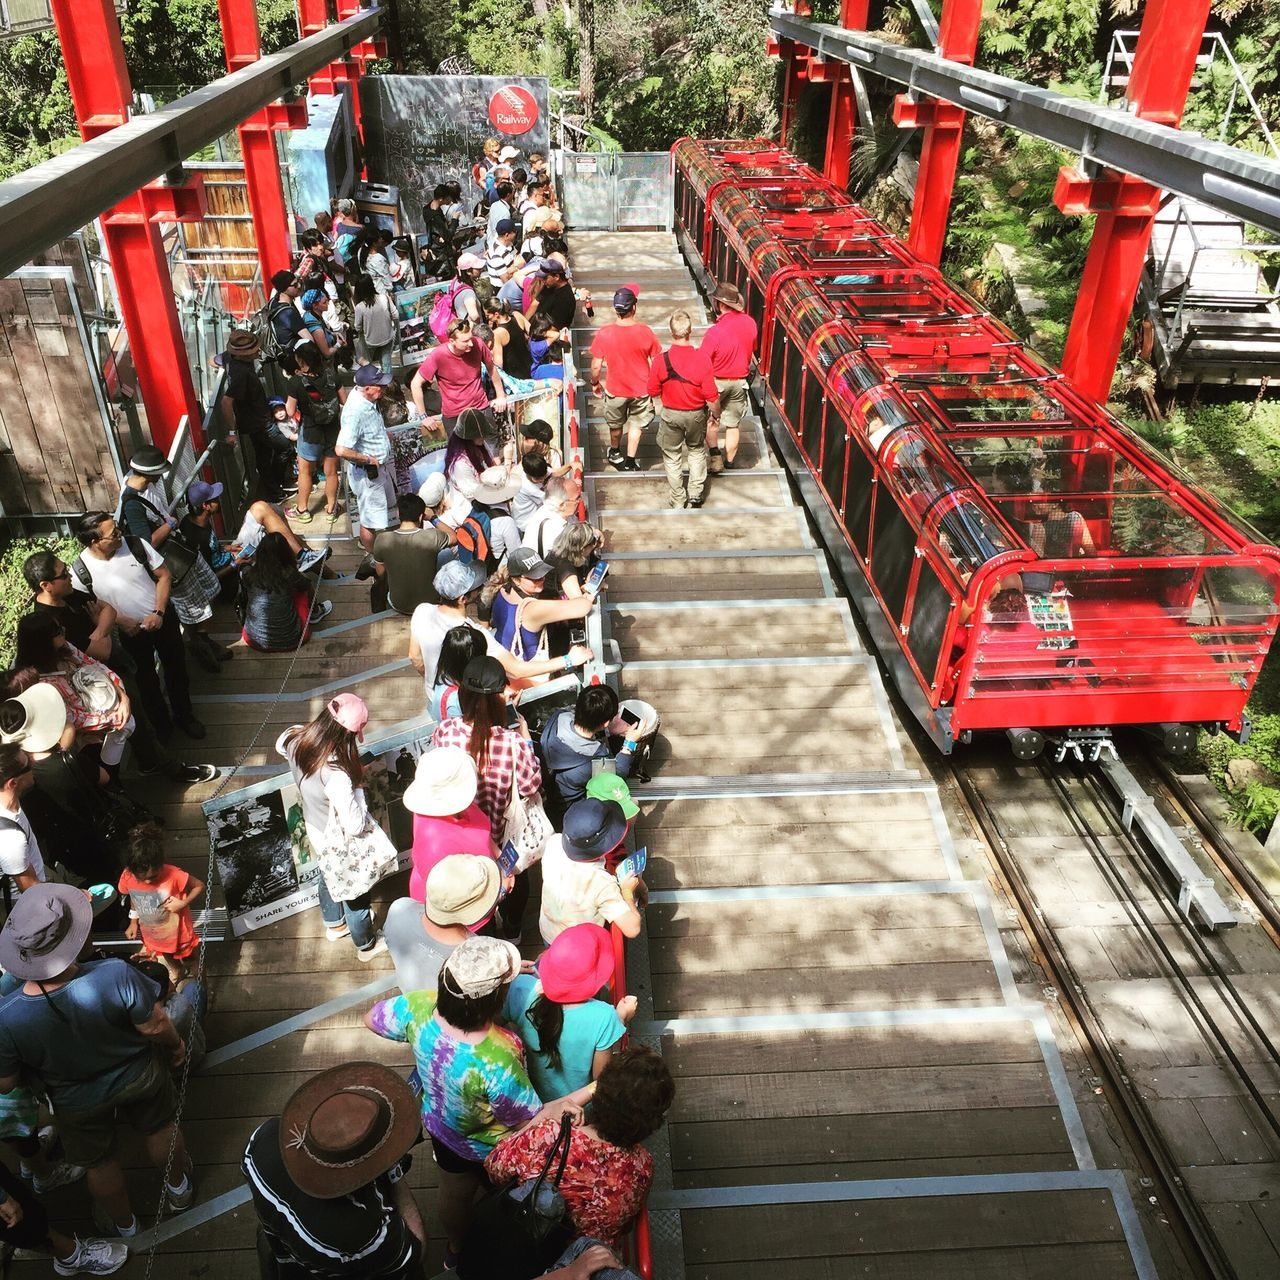 People waiting eagerly for the train ride... Large Group Of People High Angle View Steps Real People Steps And Staircases Architecture Crowd Highvantagepoint Train IPhoneography Iphone6 People Photography Scenictrain